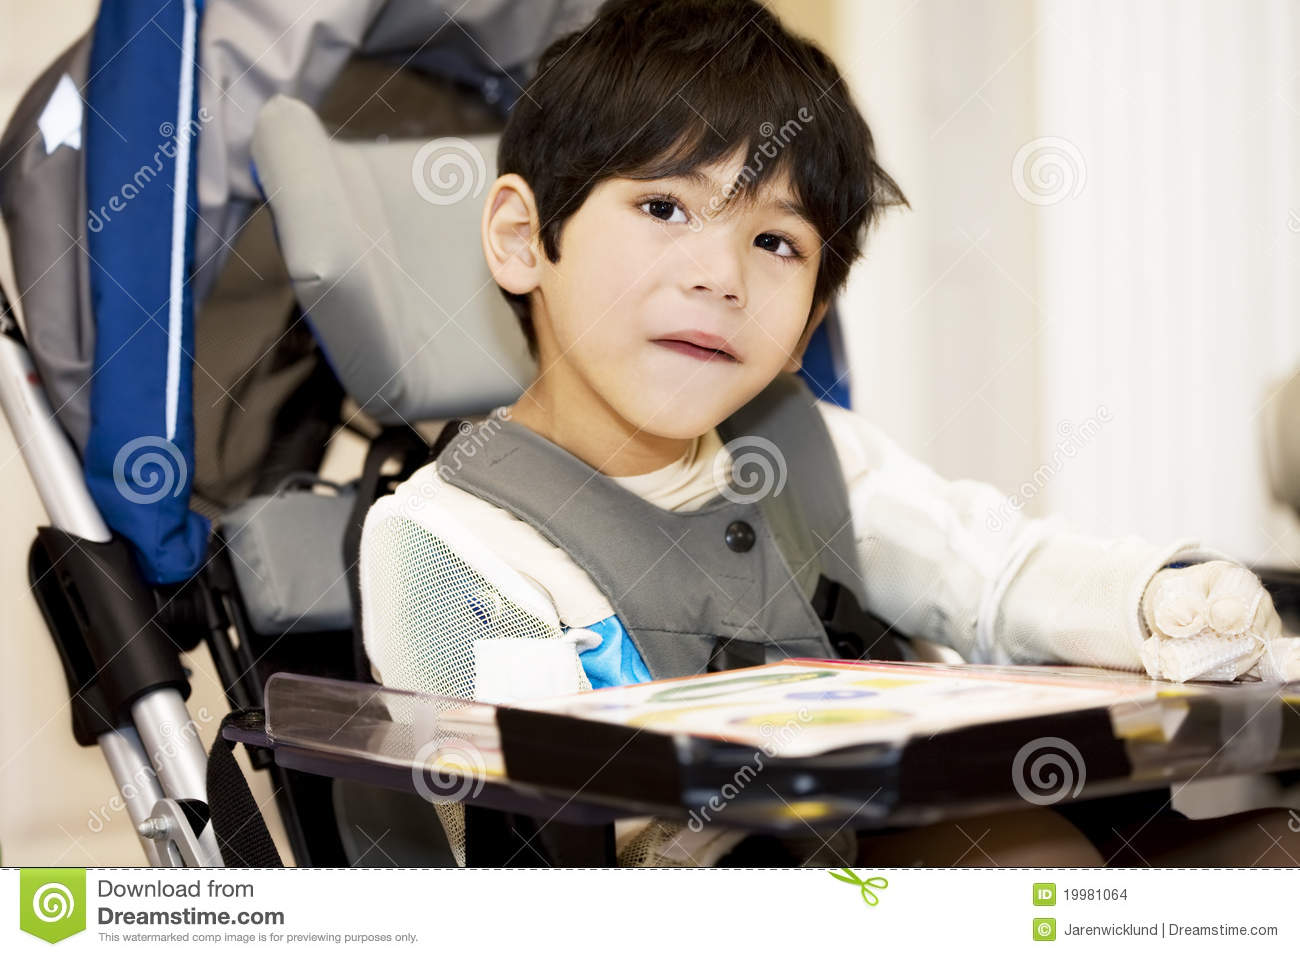 Disabled four year old boy studying